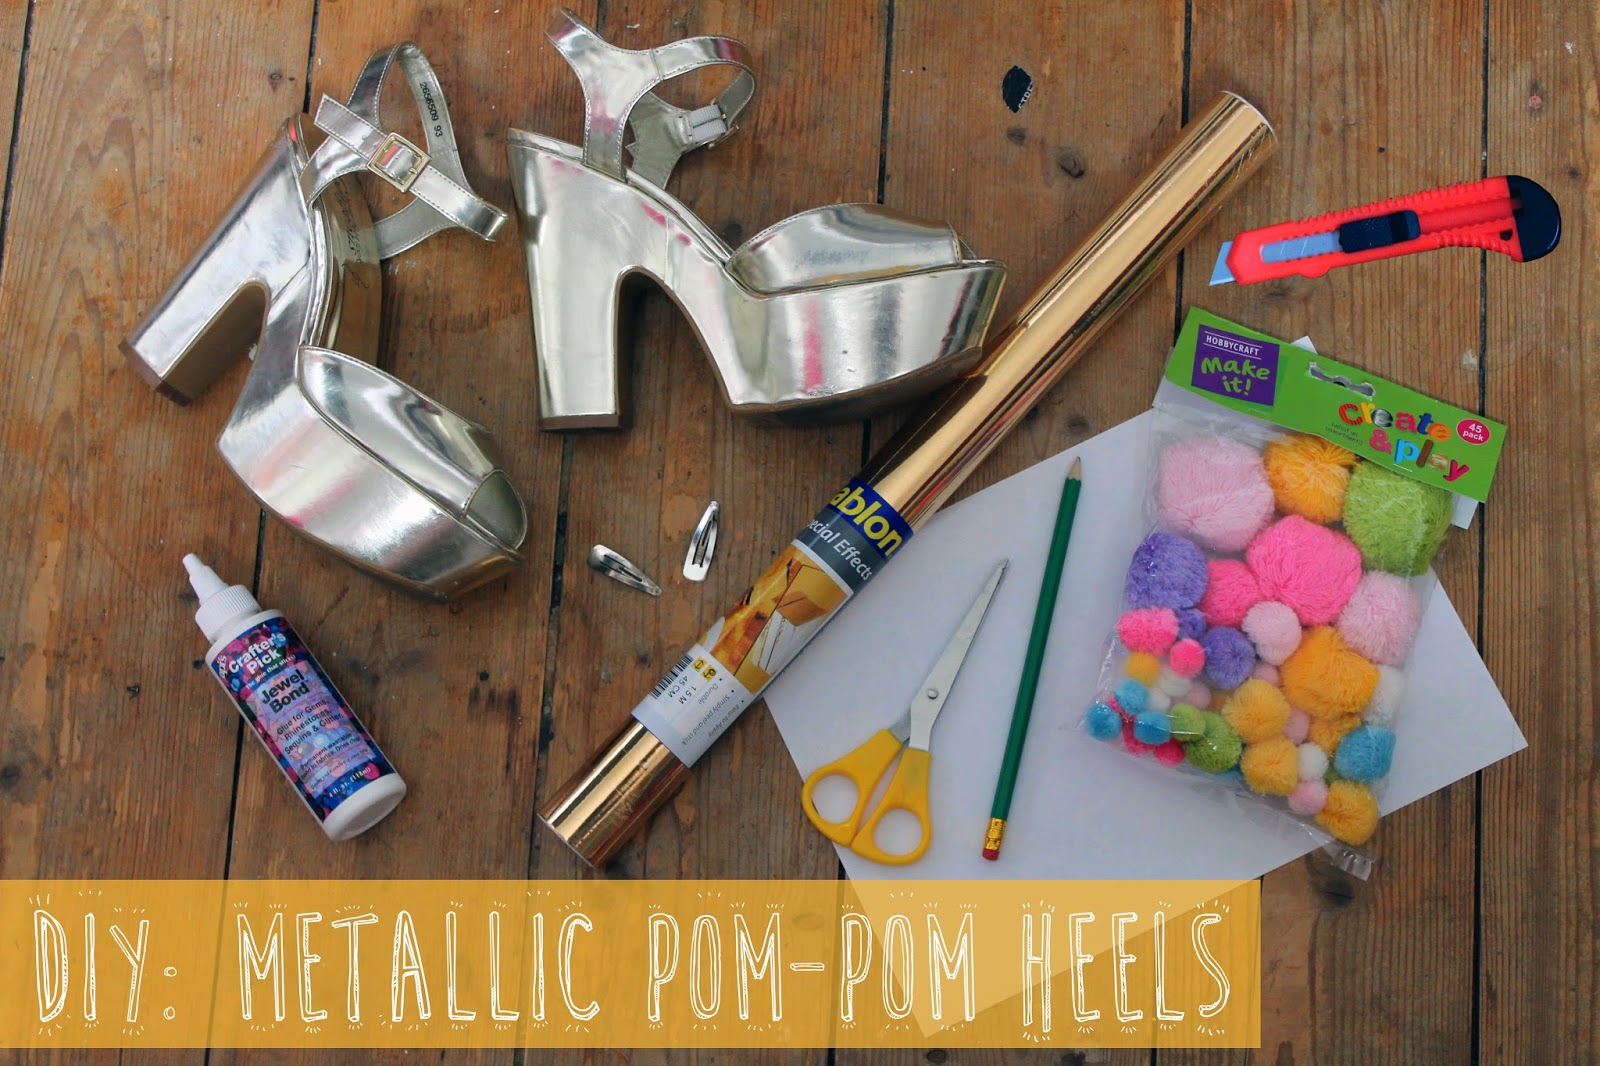 DIY metallic pom-pom heels tutorial